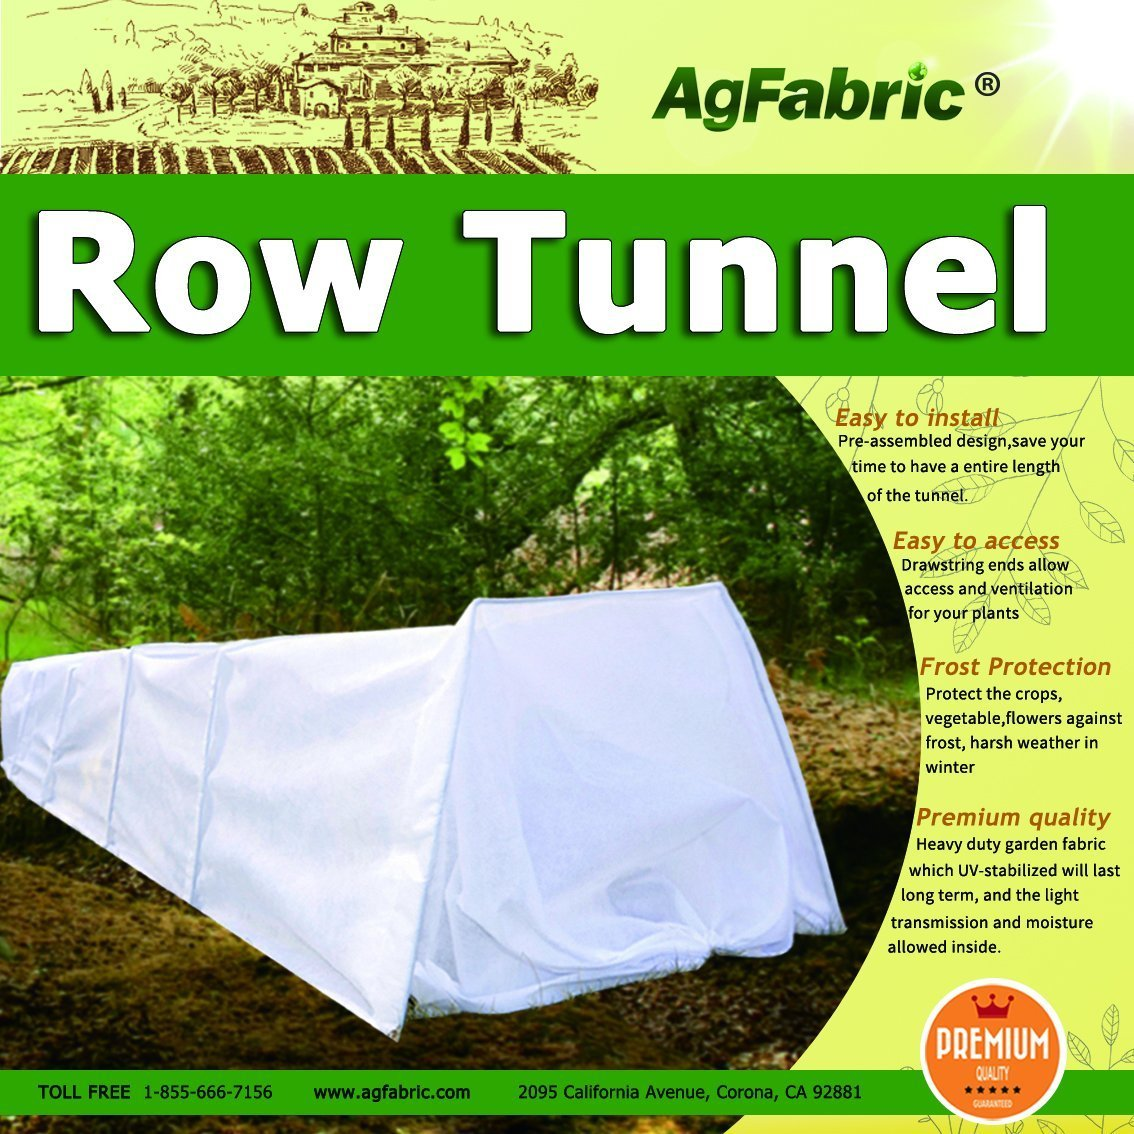 Grow Tunnel For Plants Windowed Row Tunnel with Ply Film,Plant Cover &Frost Blanket for Season Extension and Seed Germination, Large 10ft Longx 23''Widex15''High